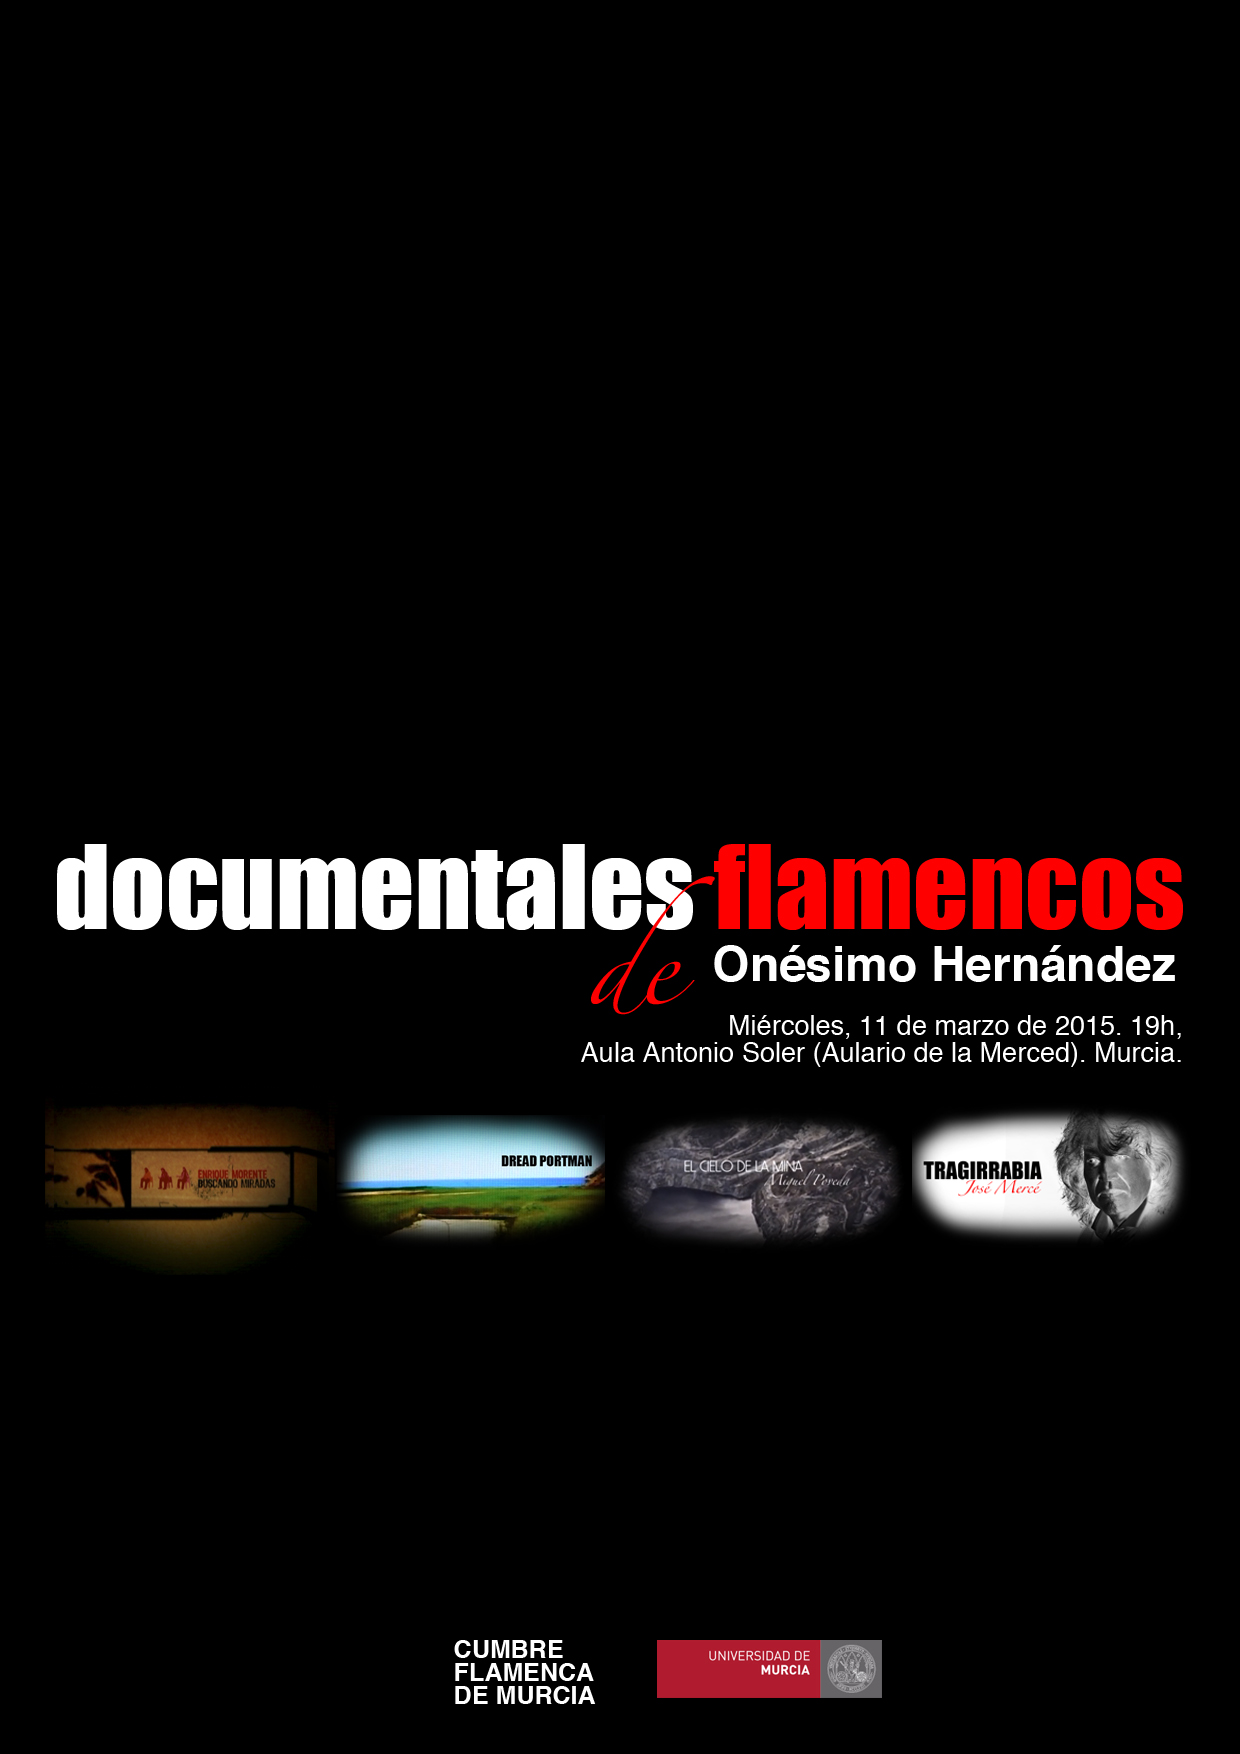 documentales flamencos